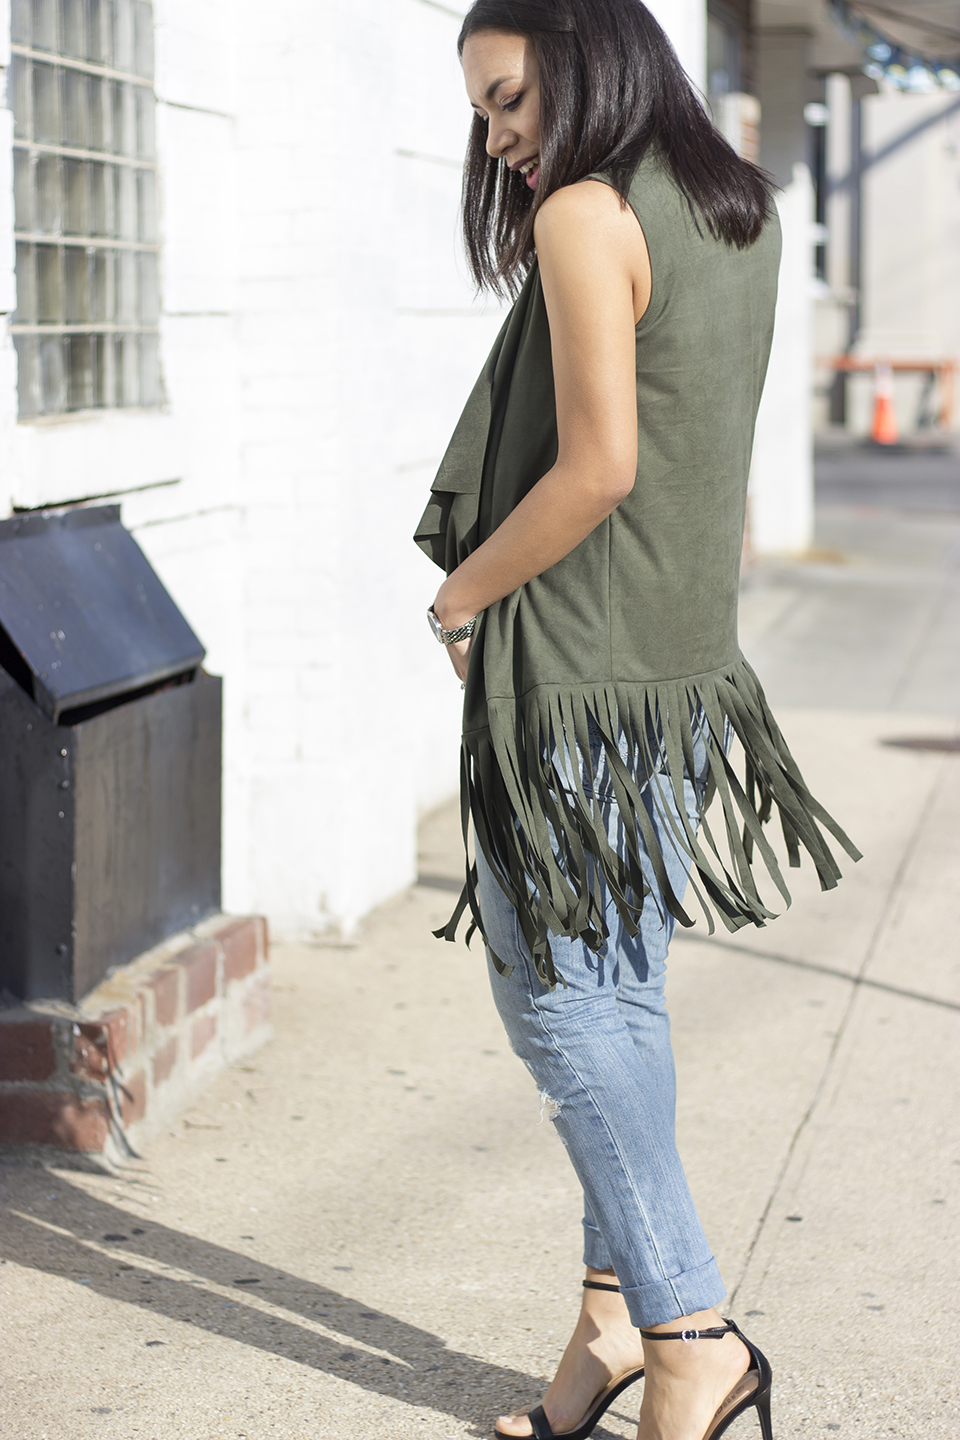 Green Fringe Vest,fringe vest, suede fringe vest, fringe, distressed skinny jeans, spring fashion trend, 2016 spring fashion trends, festive season, festive outfits, festive outfit, how to wear the long fringe vest spring trend